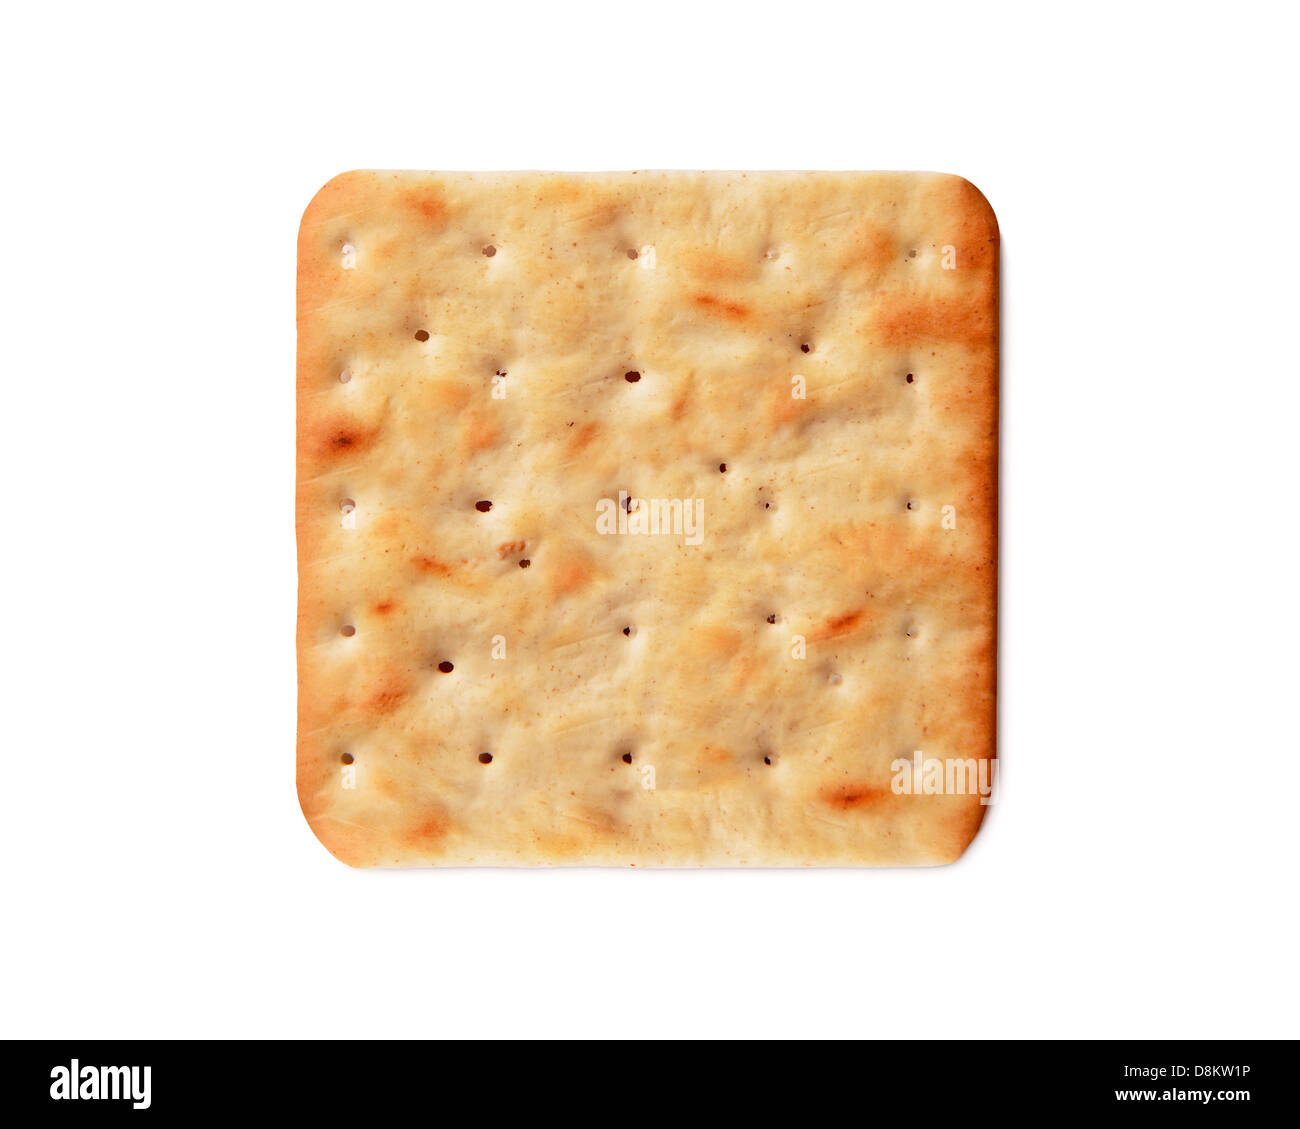 Cream Cracker, Cut Out. - Stock Image